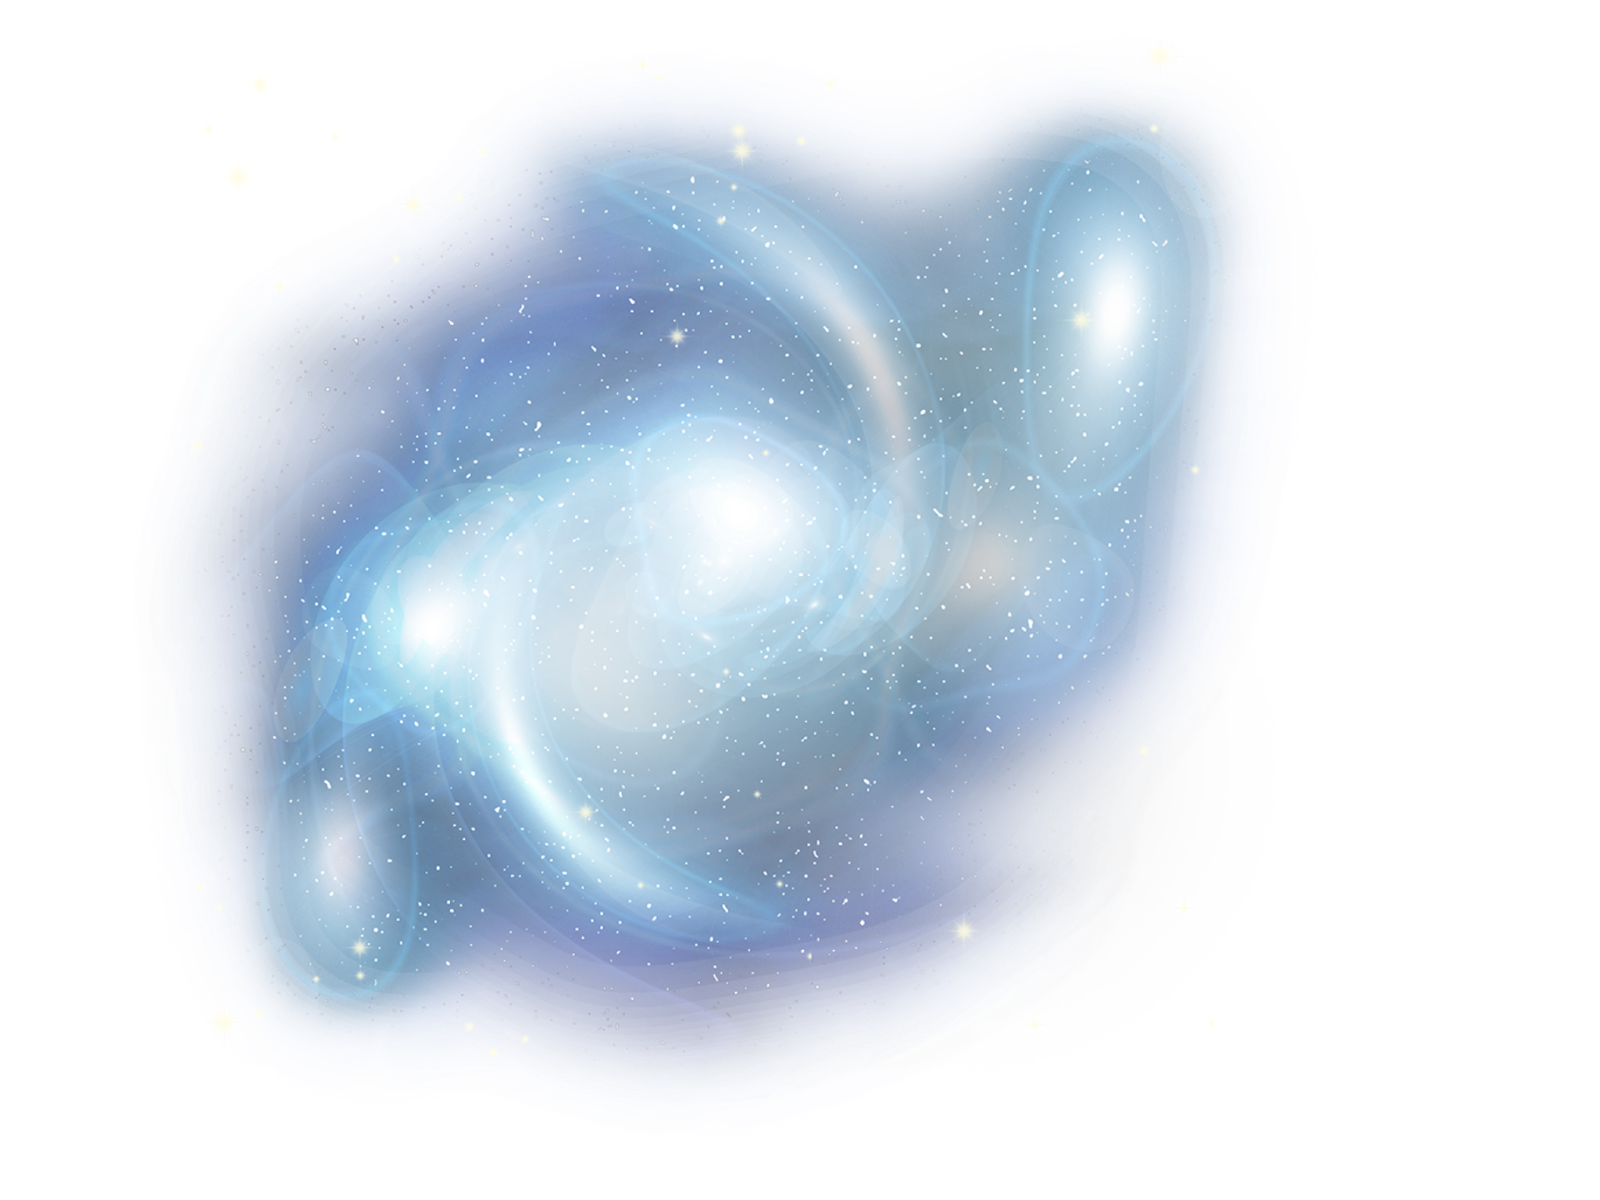 Galaxy star clipart banner freeuse download danrleysnow's Photos, Drawings and Gif hq banner freeuse download